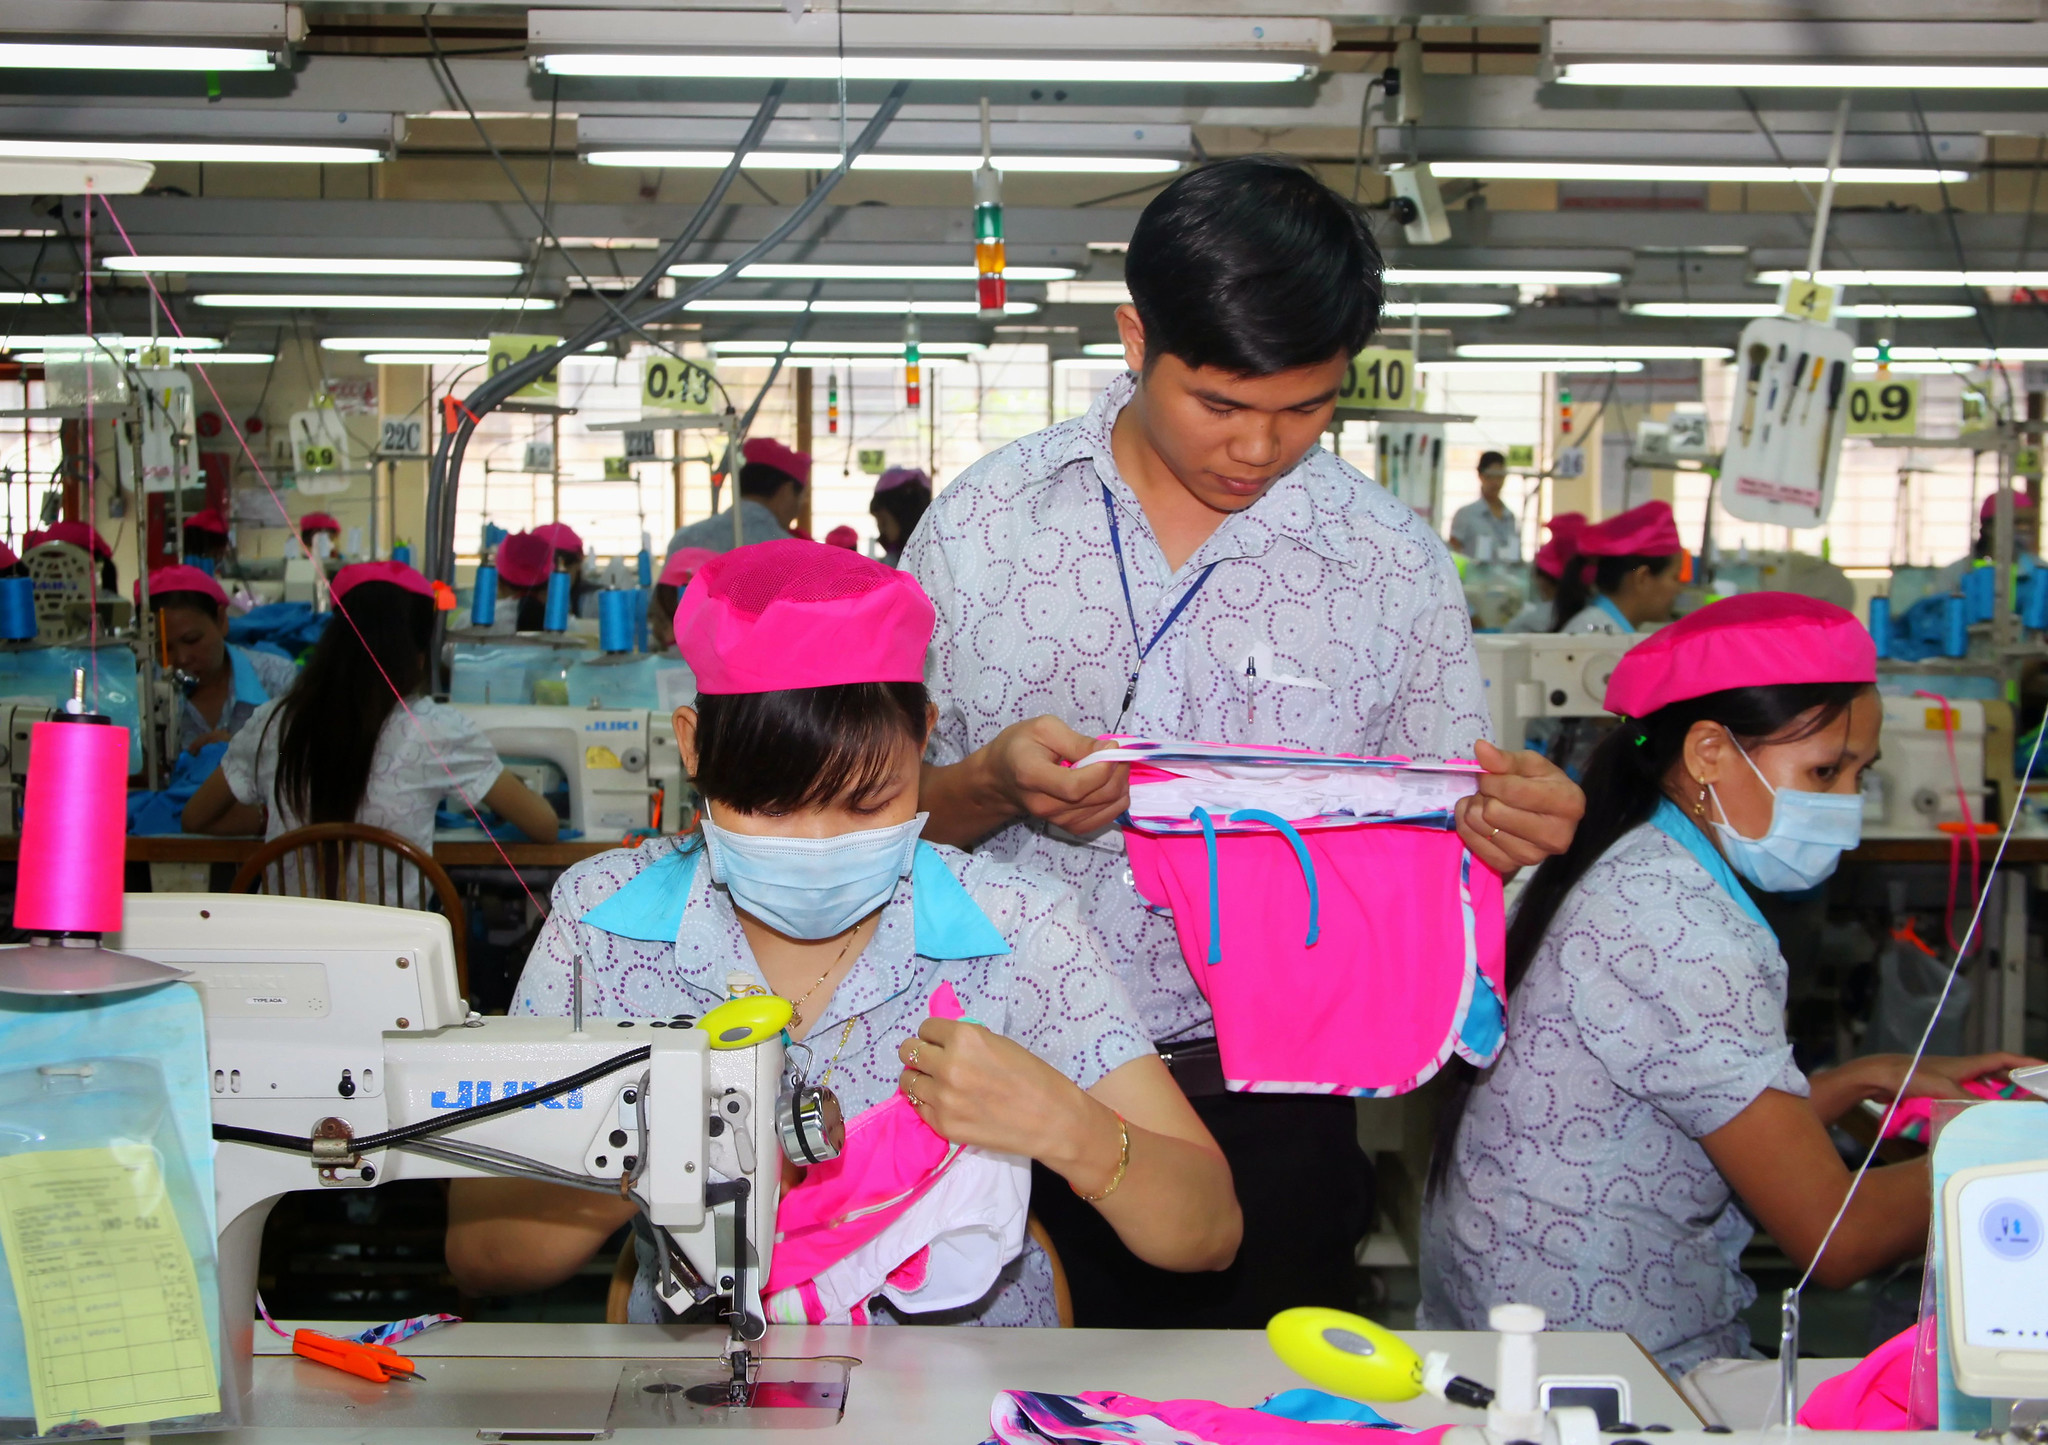 A supervisor oversees his employees' work in a clothing plant in Vietnam. © BetterWork